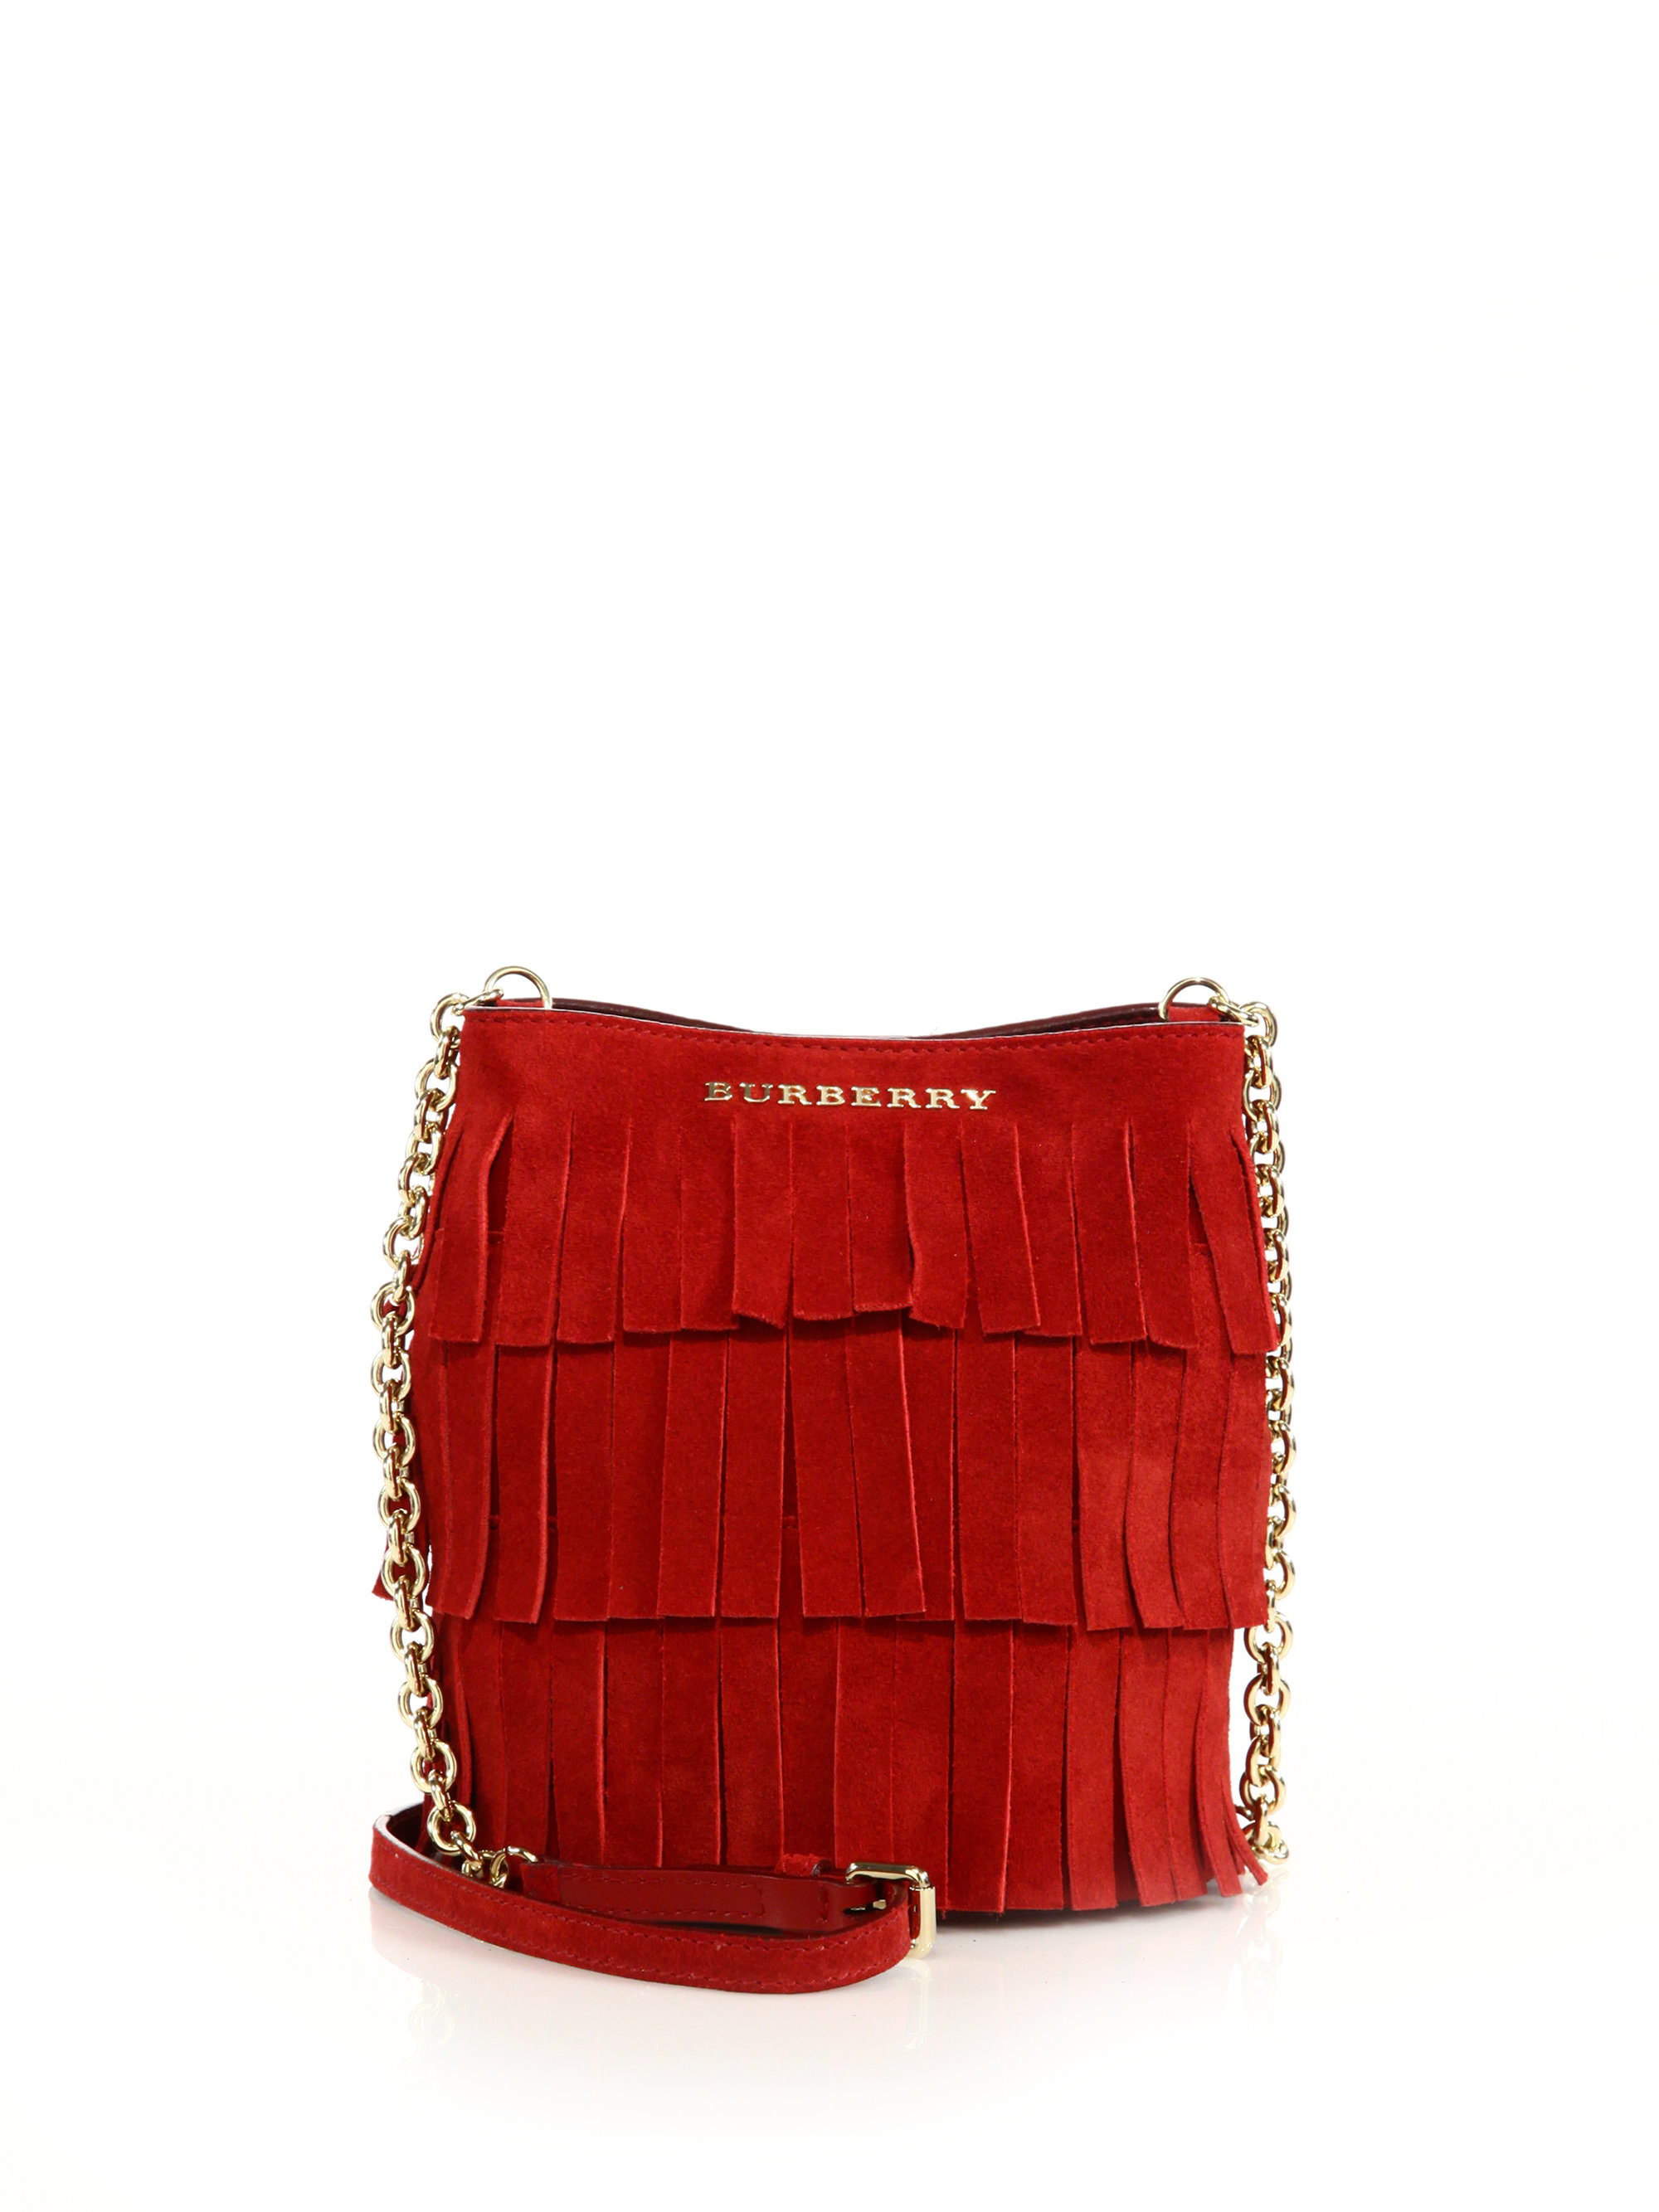 387a8959a53 Burberry Mini Fringed Suede Bucket Bag in Red - Lyst